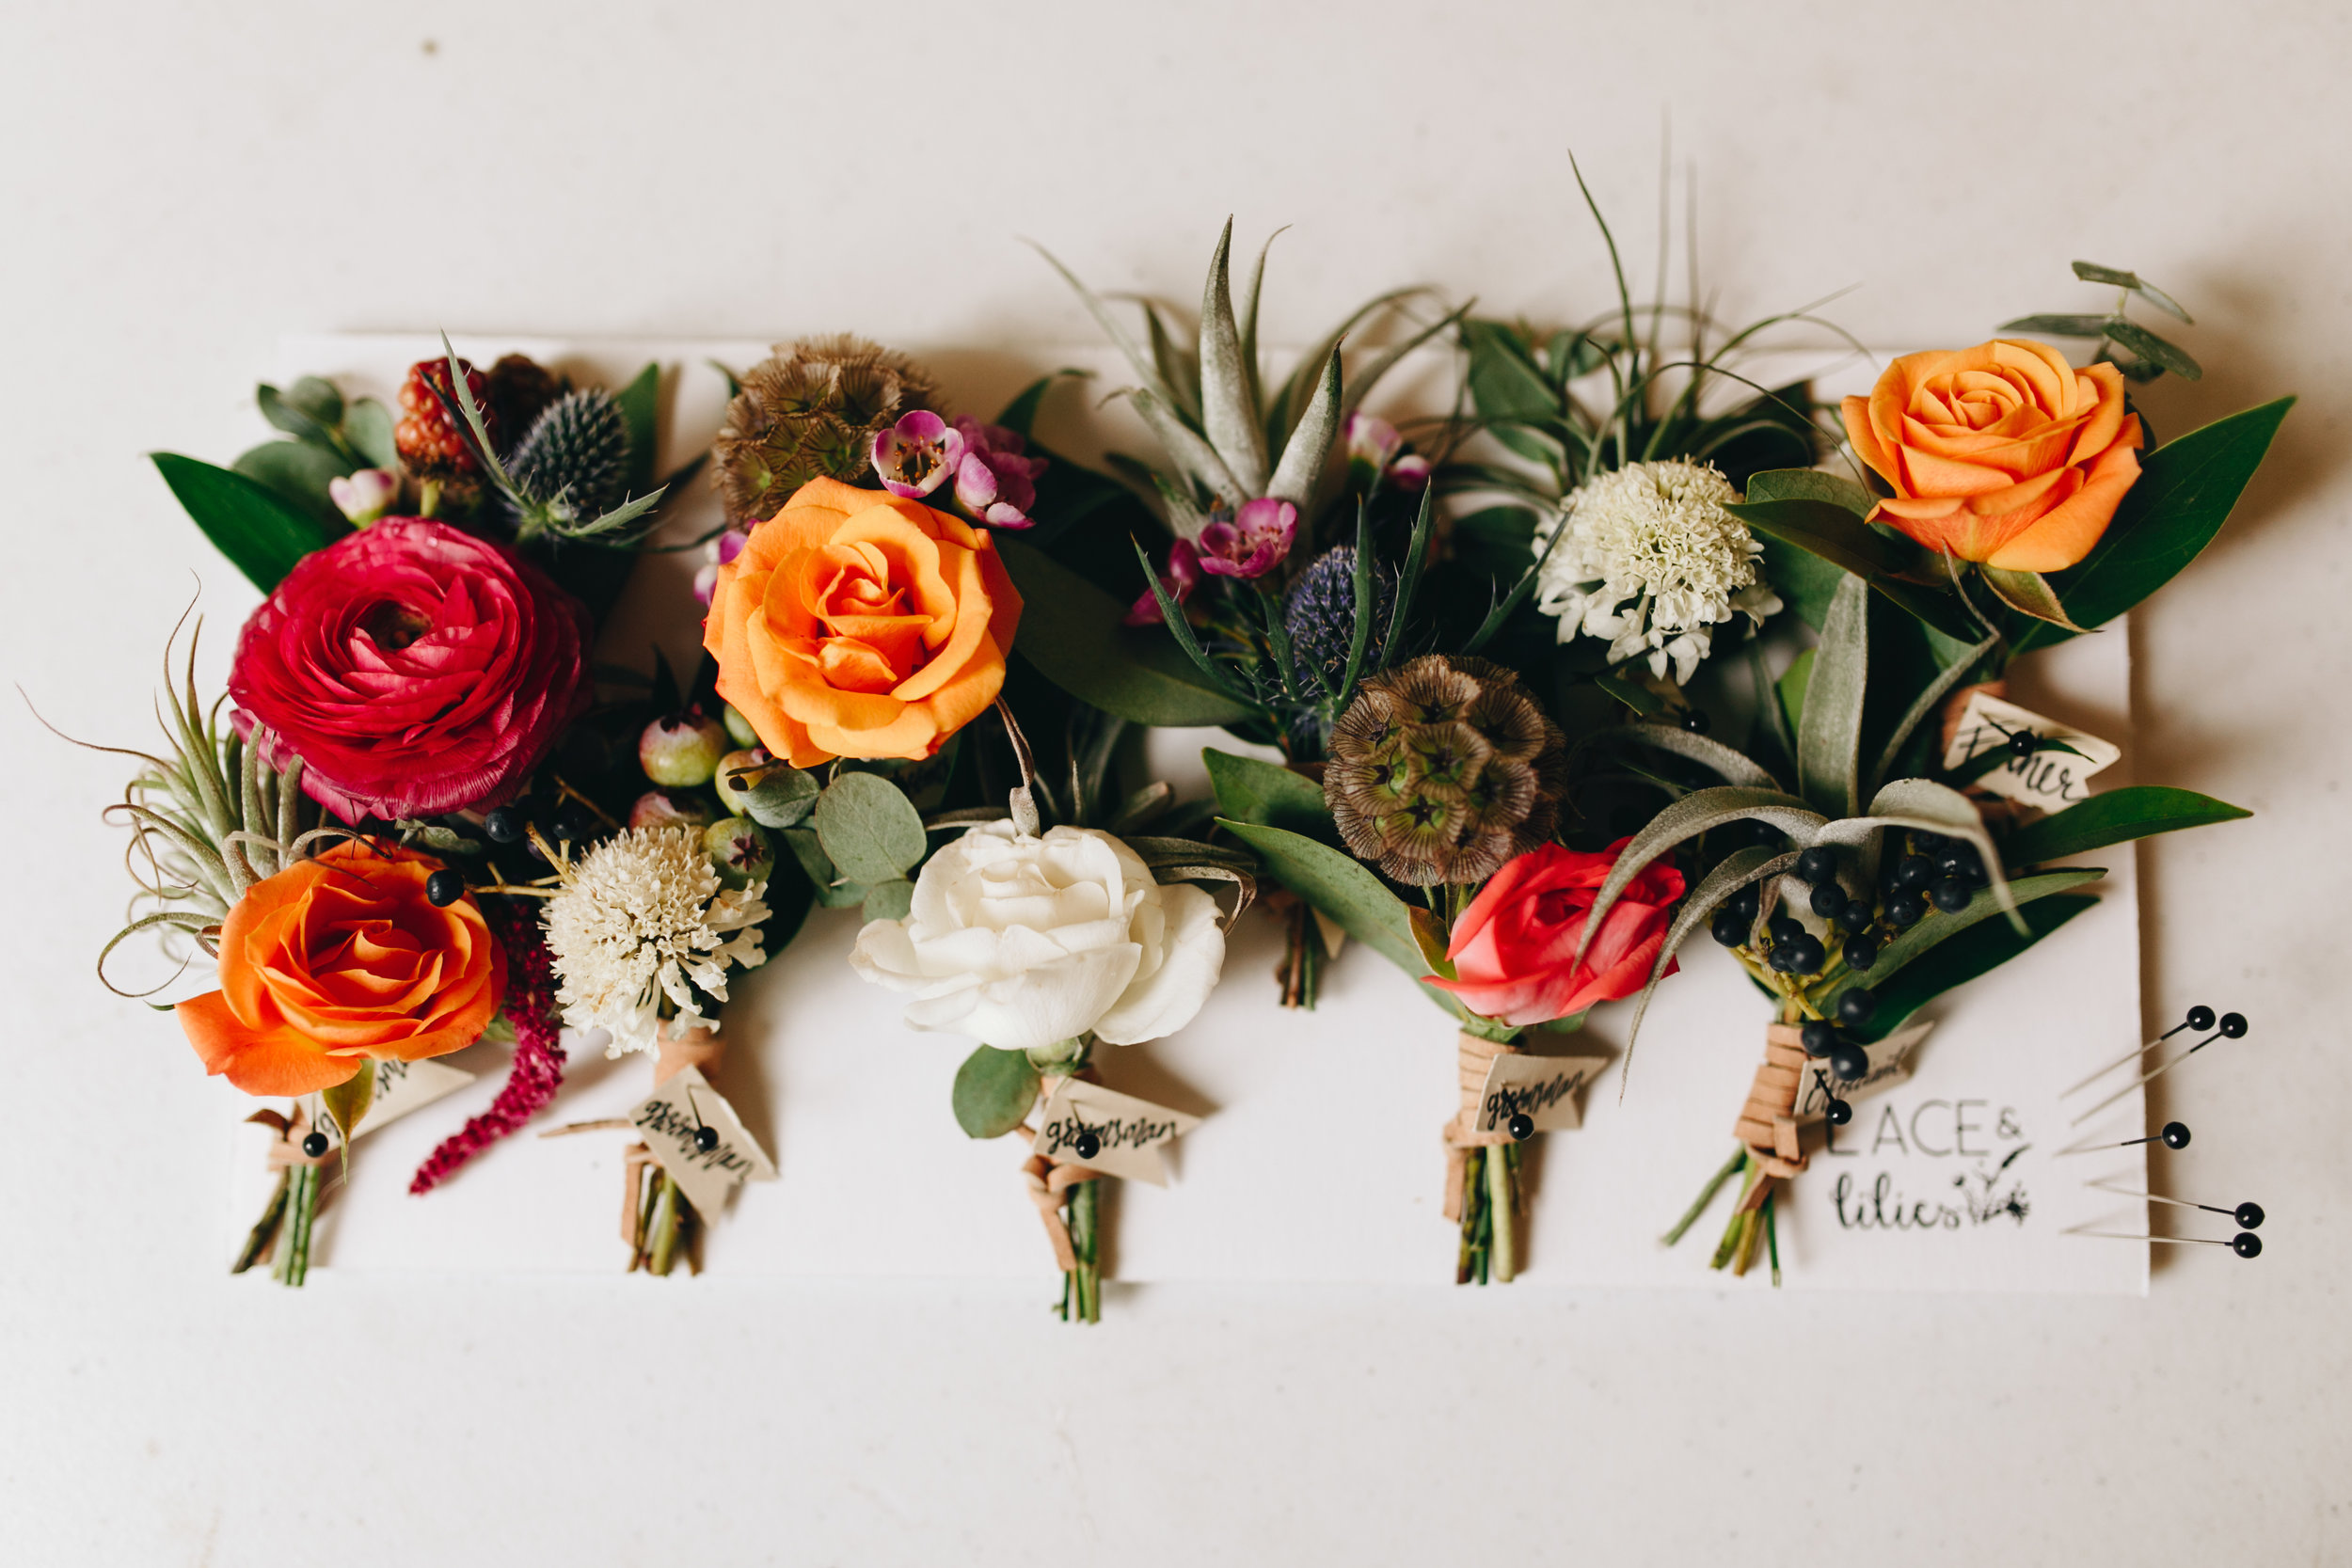 Flowers by Lace and lilies, jewel tones, colorful, bridal bouquet, hair crown, plants and flowers, colorful arch, castle wedding, colorado wedding, dunafon castle wedding, boutonnieres